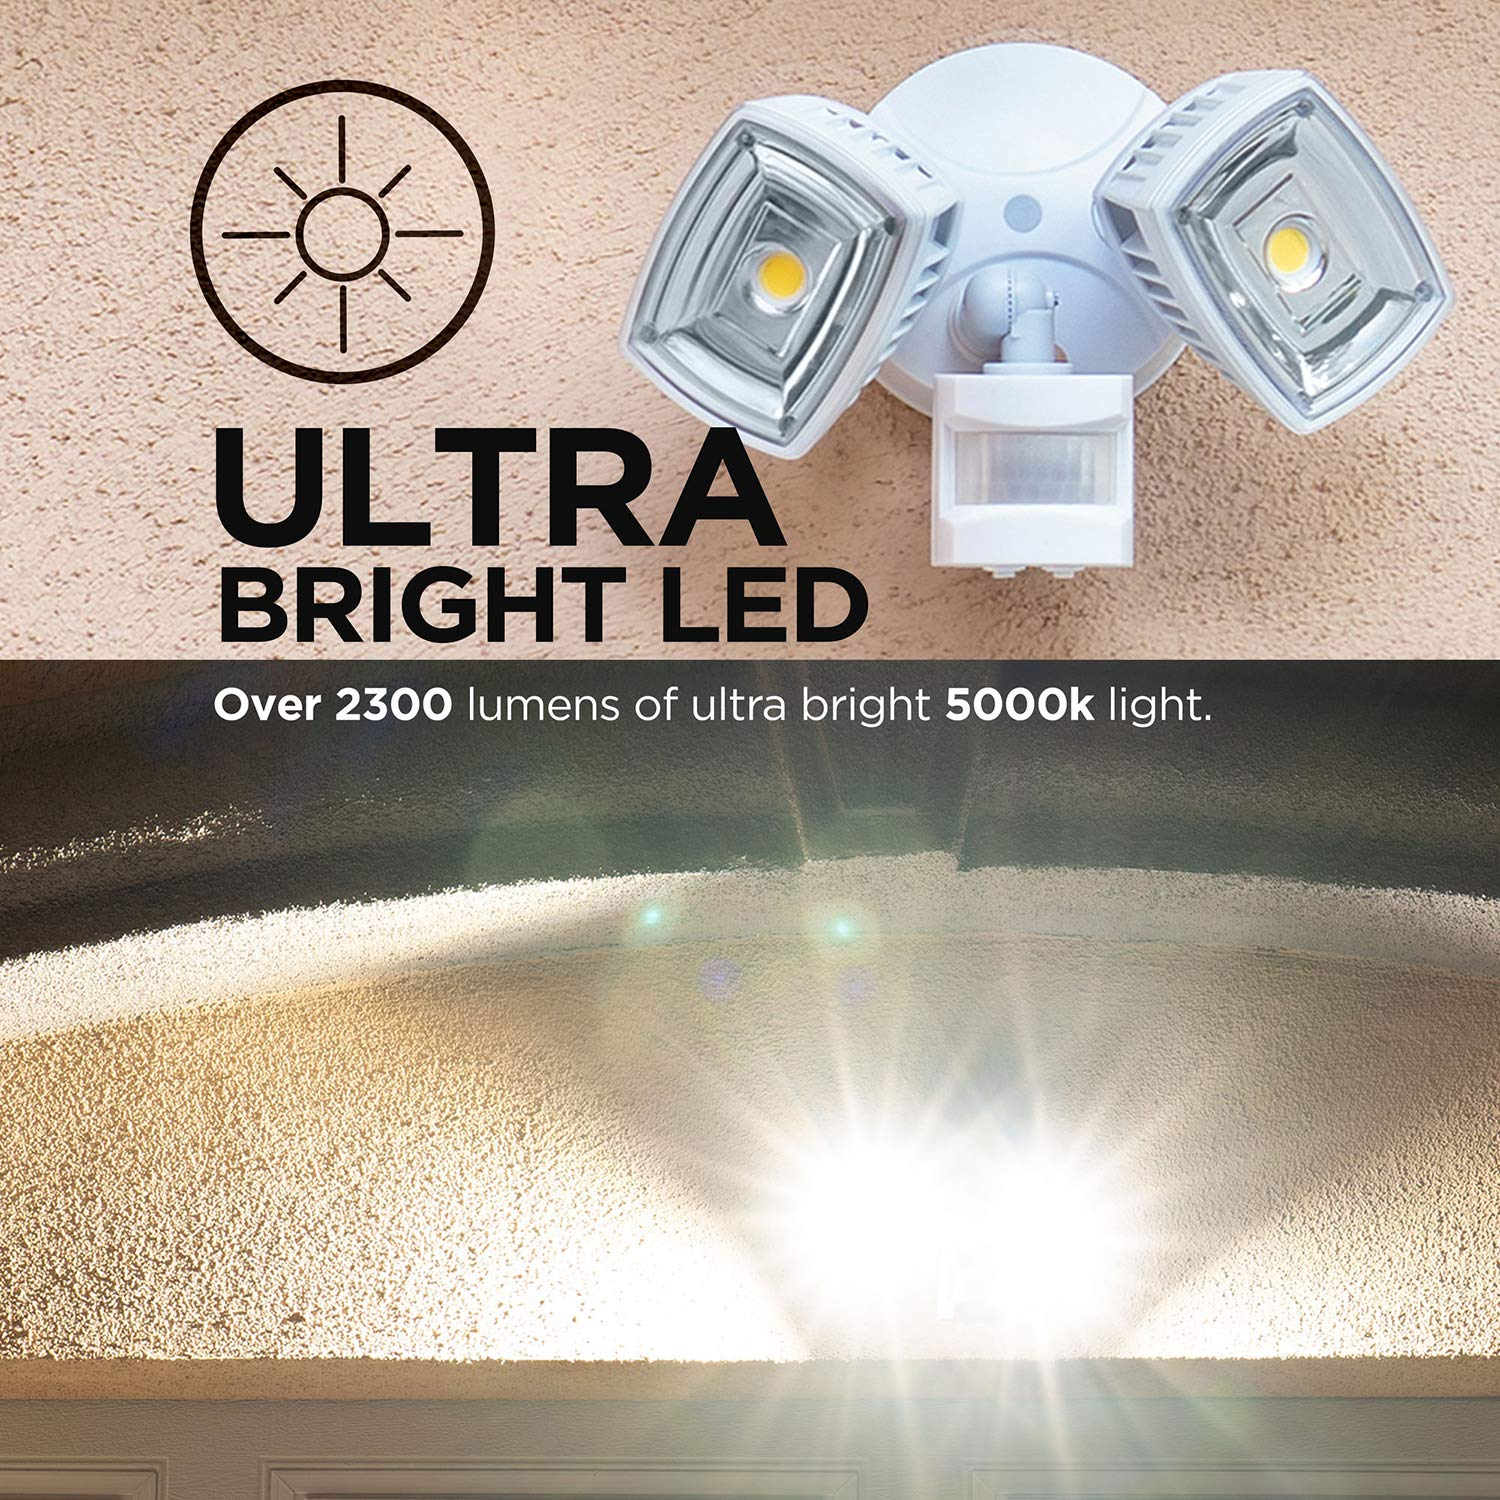 Home Zone ES00730U Security LED Motion Sensor Flood Lights, Outdoor Weatherproof Ultra Bright 5000K, White by Home Zone (Image #7)